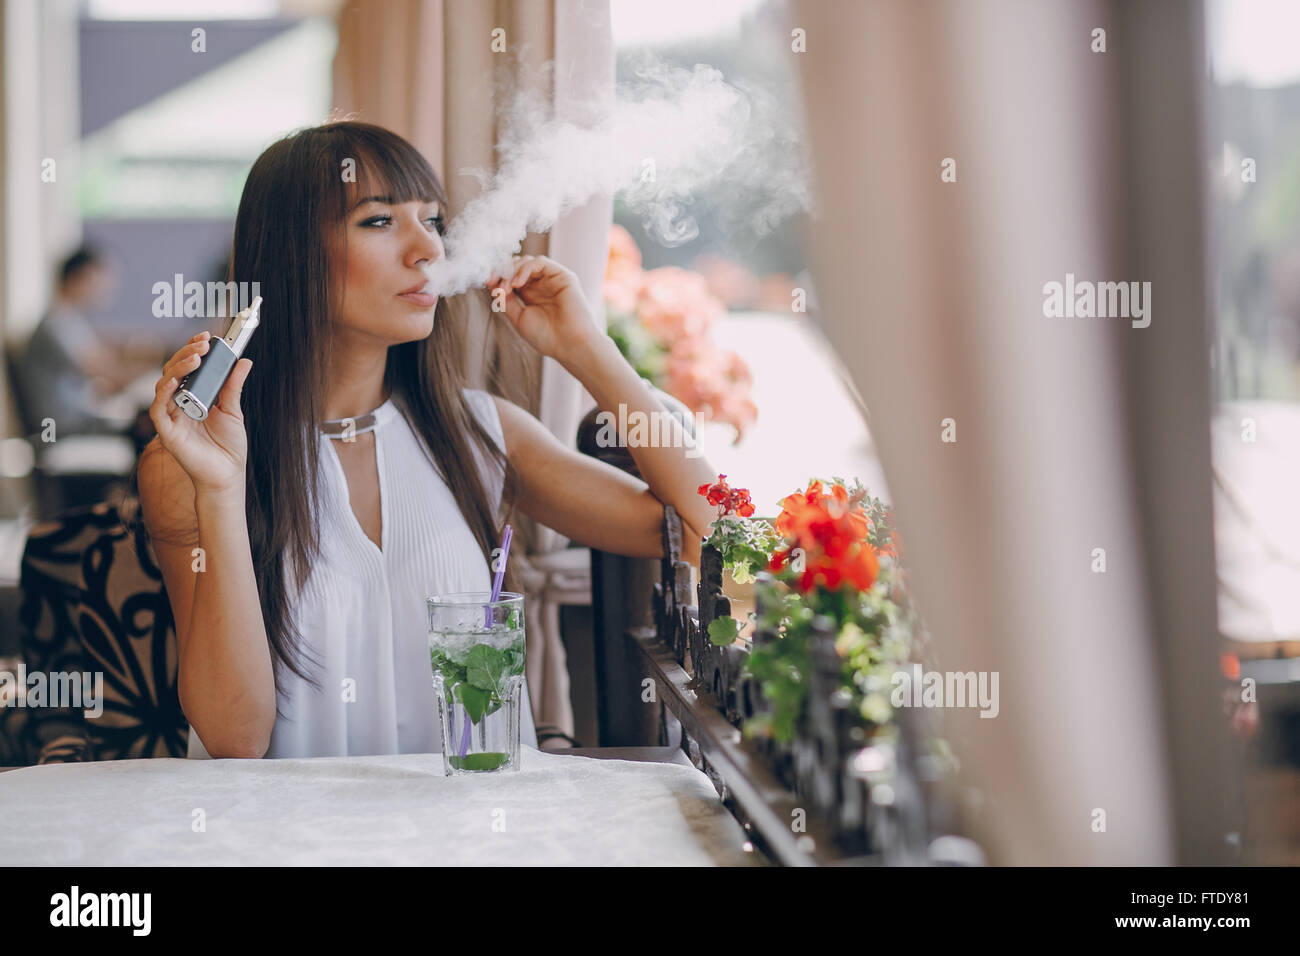 girn in cafe with E-Cigarette - Stock Image